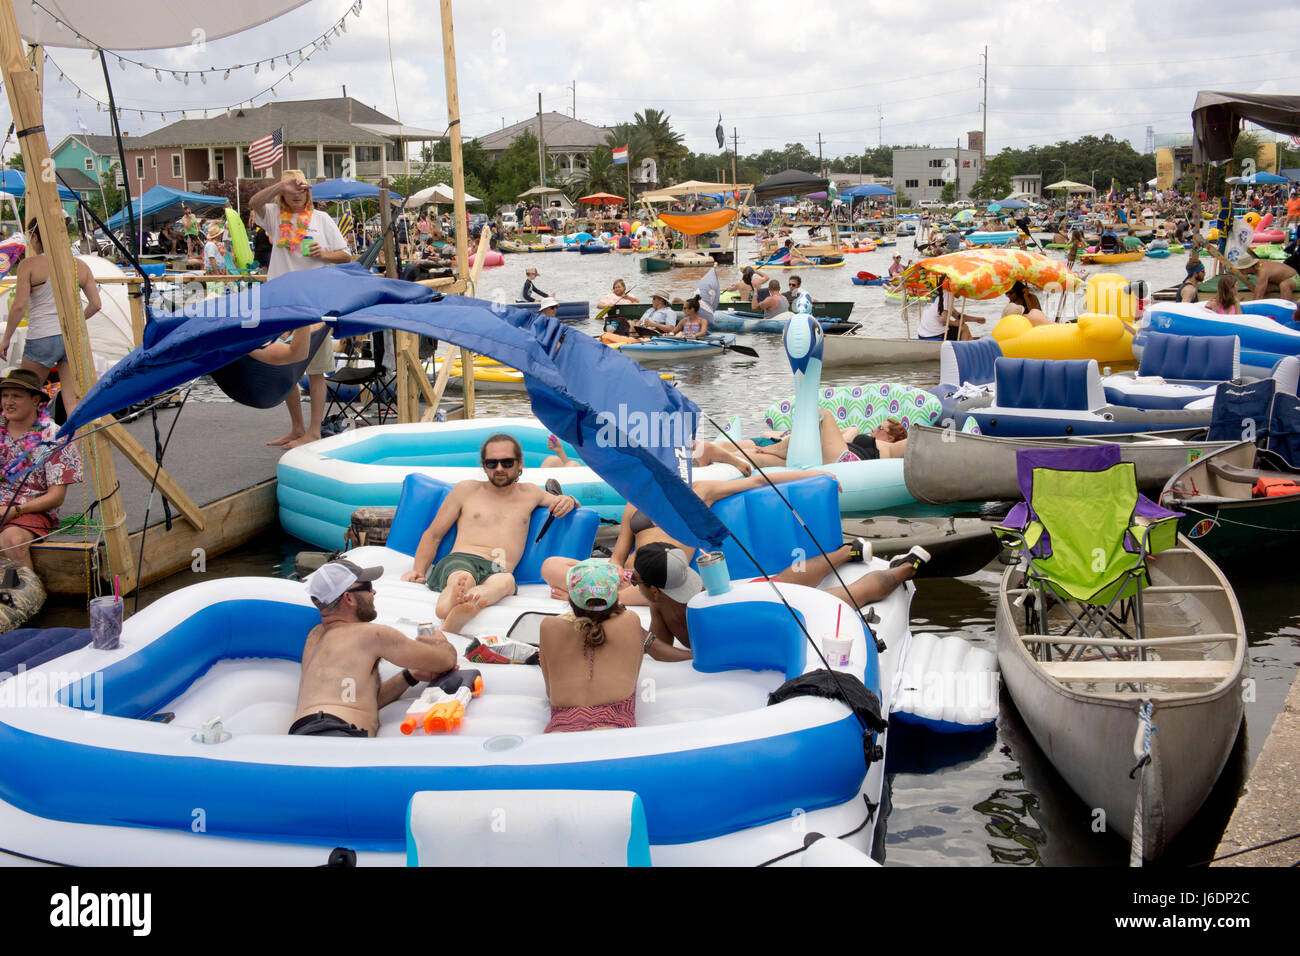 Crowds of boaters enjoying the water on Bayou St John.  Bayou Boogaloo Festival, New Orleans. - Stock Image